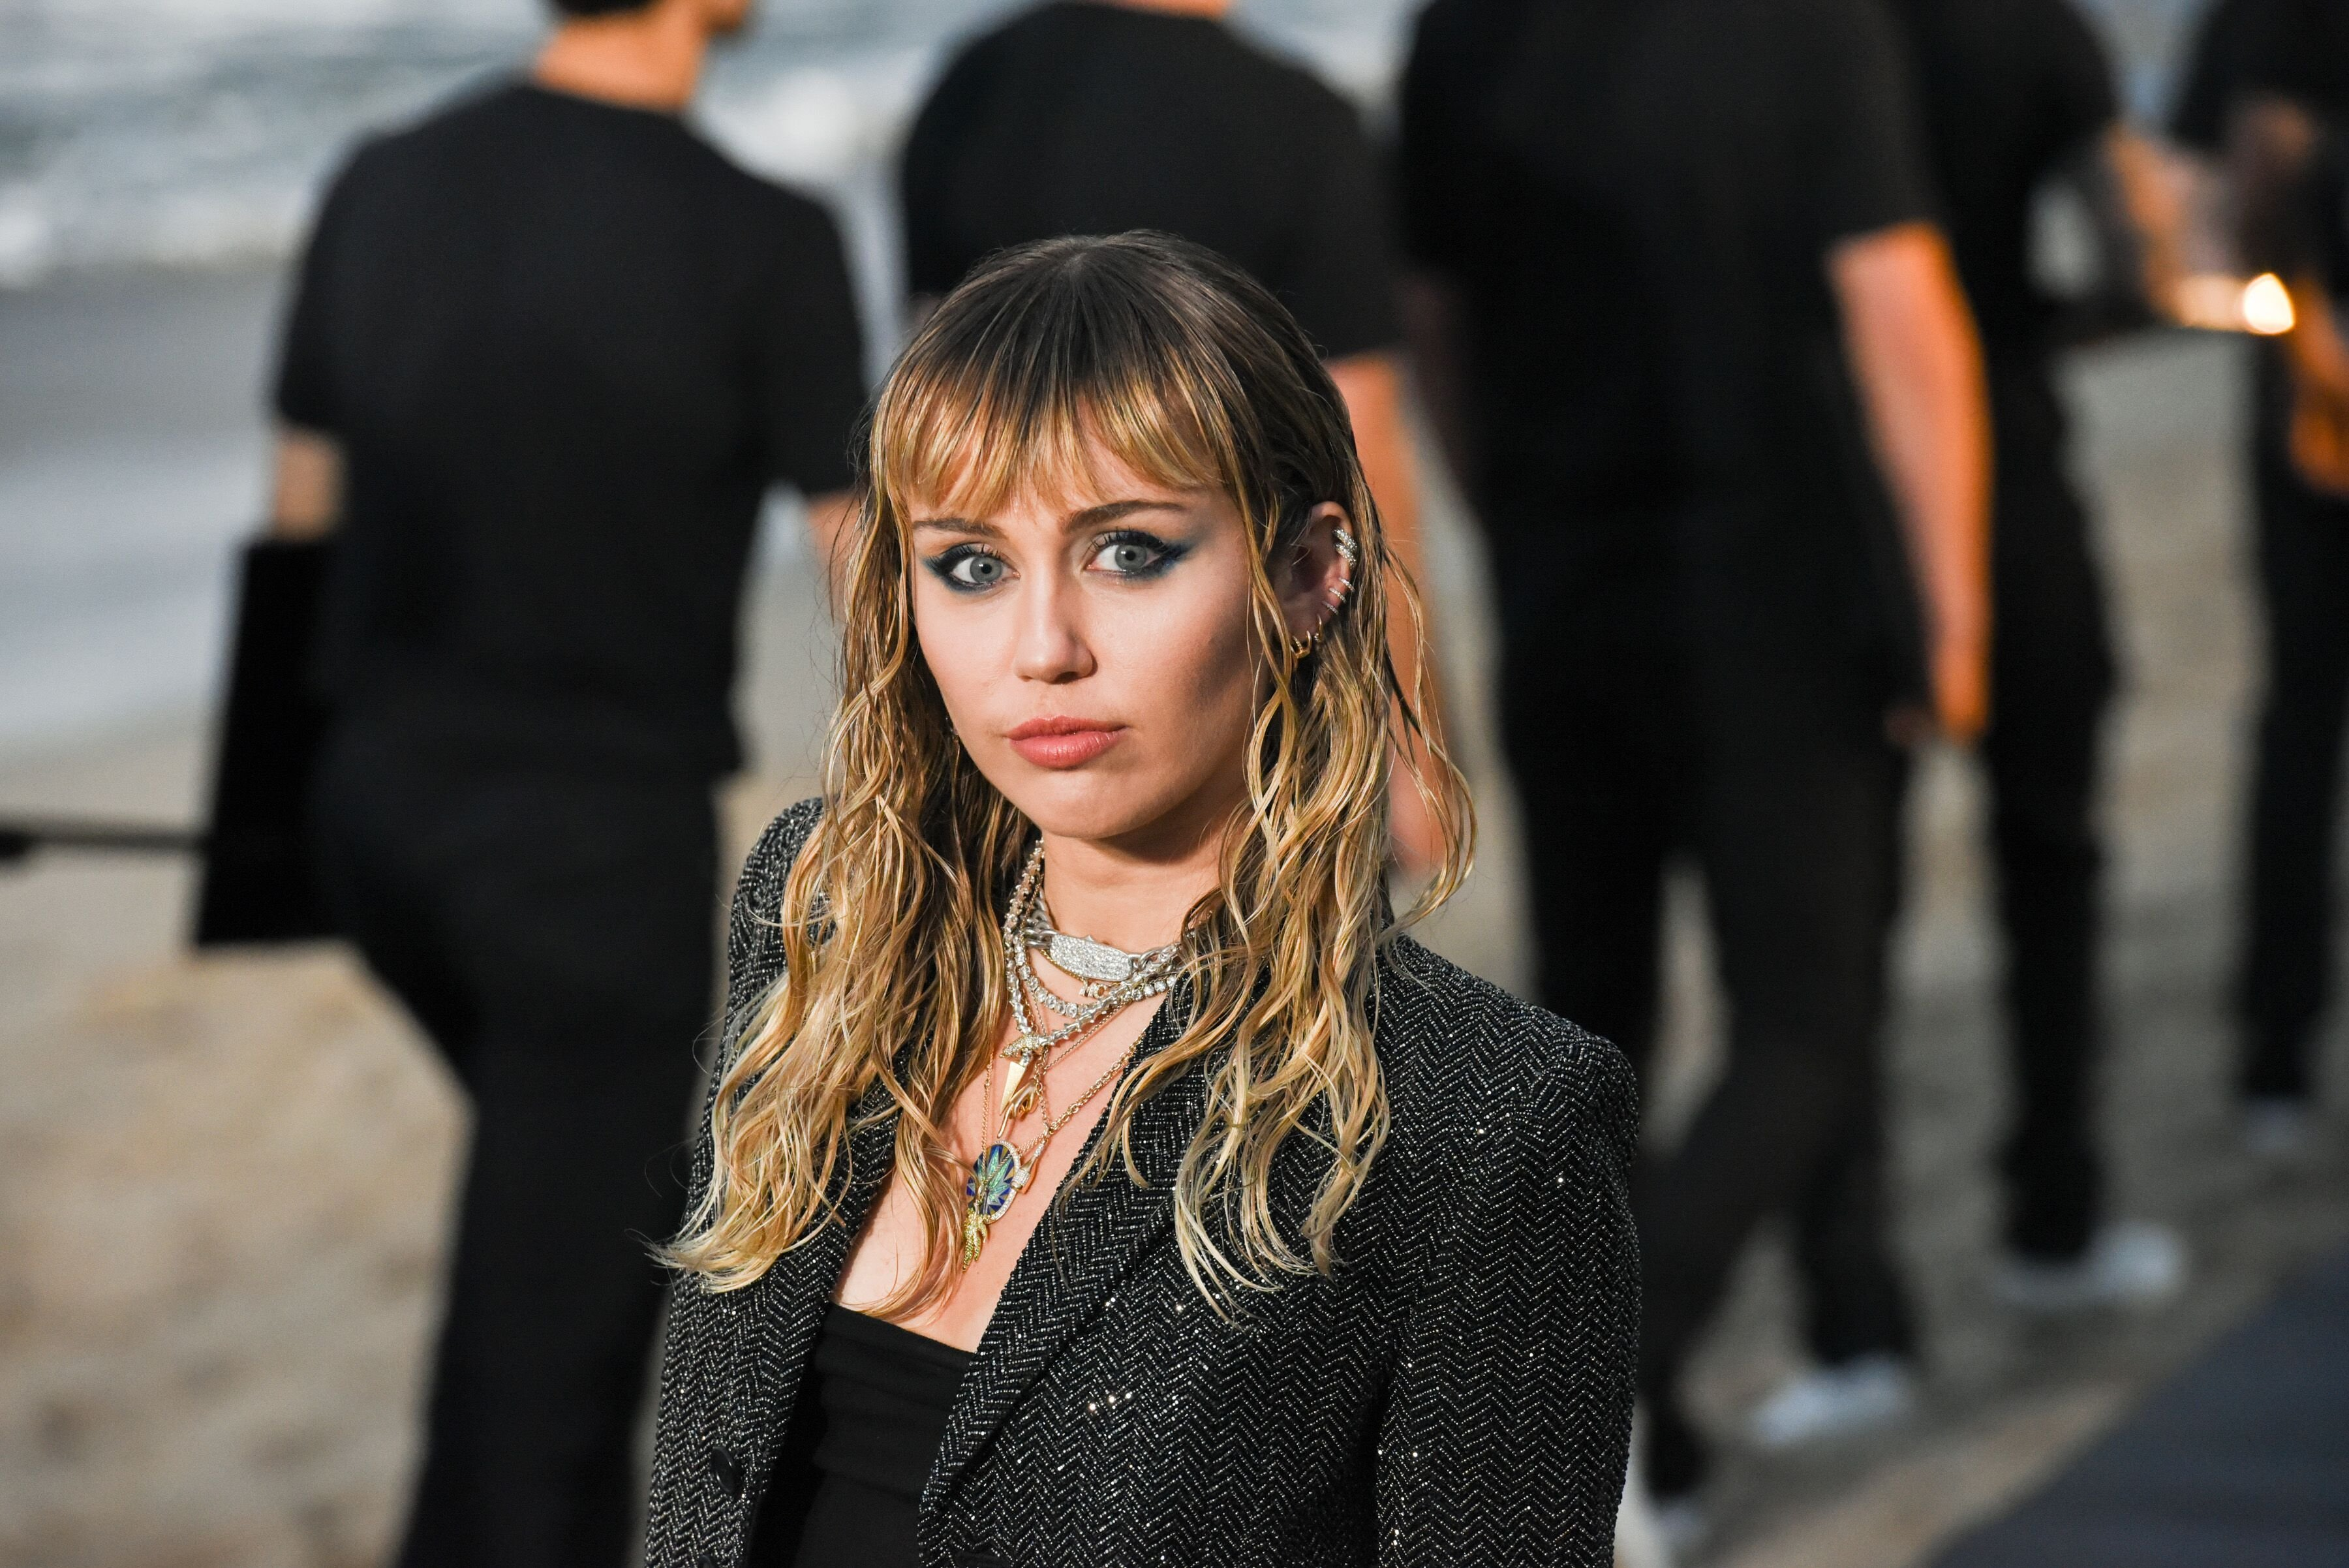 Miley Cyrus at Saint Laurent men's spring-summer 20 show on June 06, 2019, in Malibu, California | Photo: Presley Ann/WireImage/Getty Images